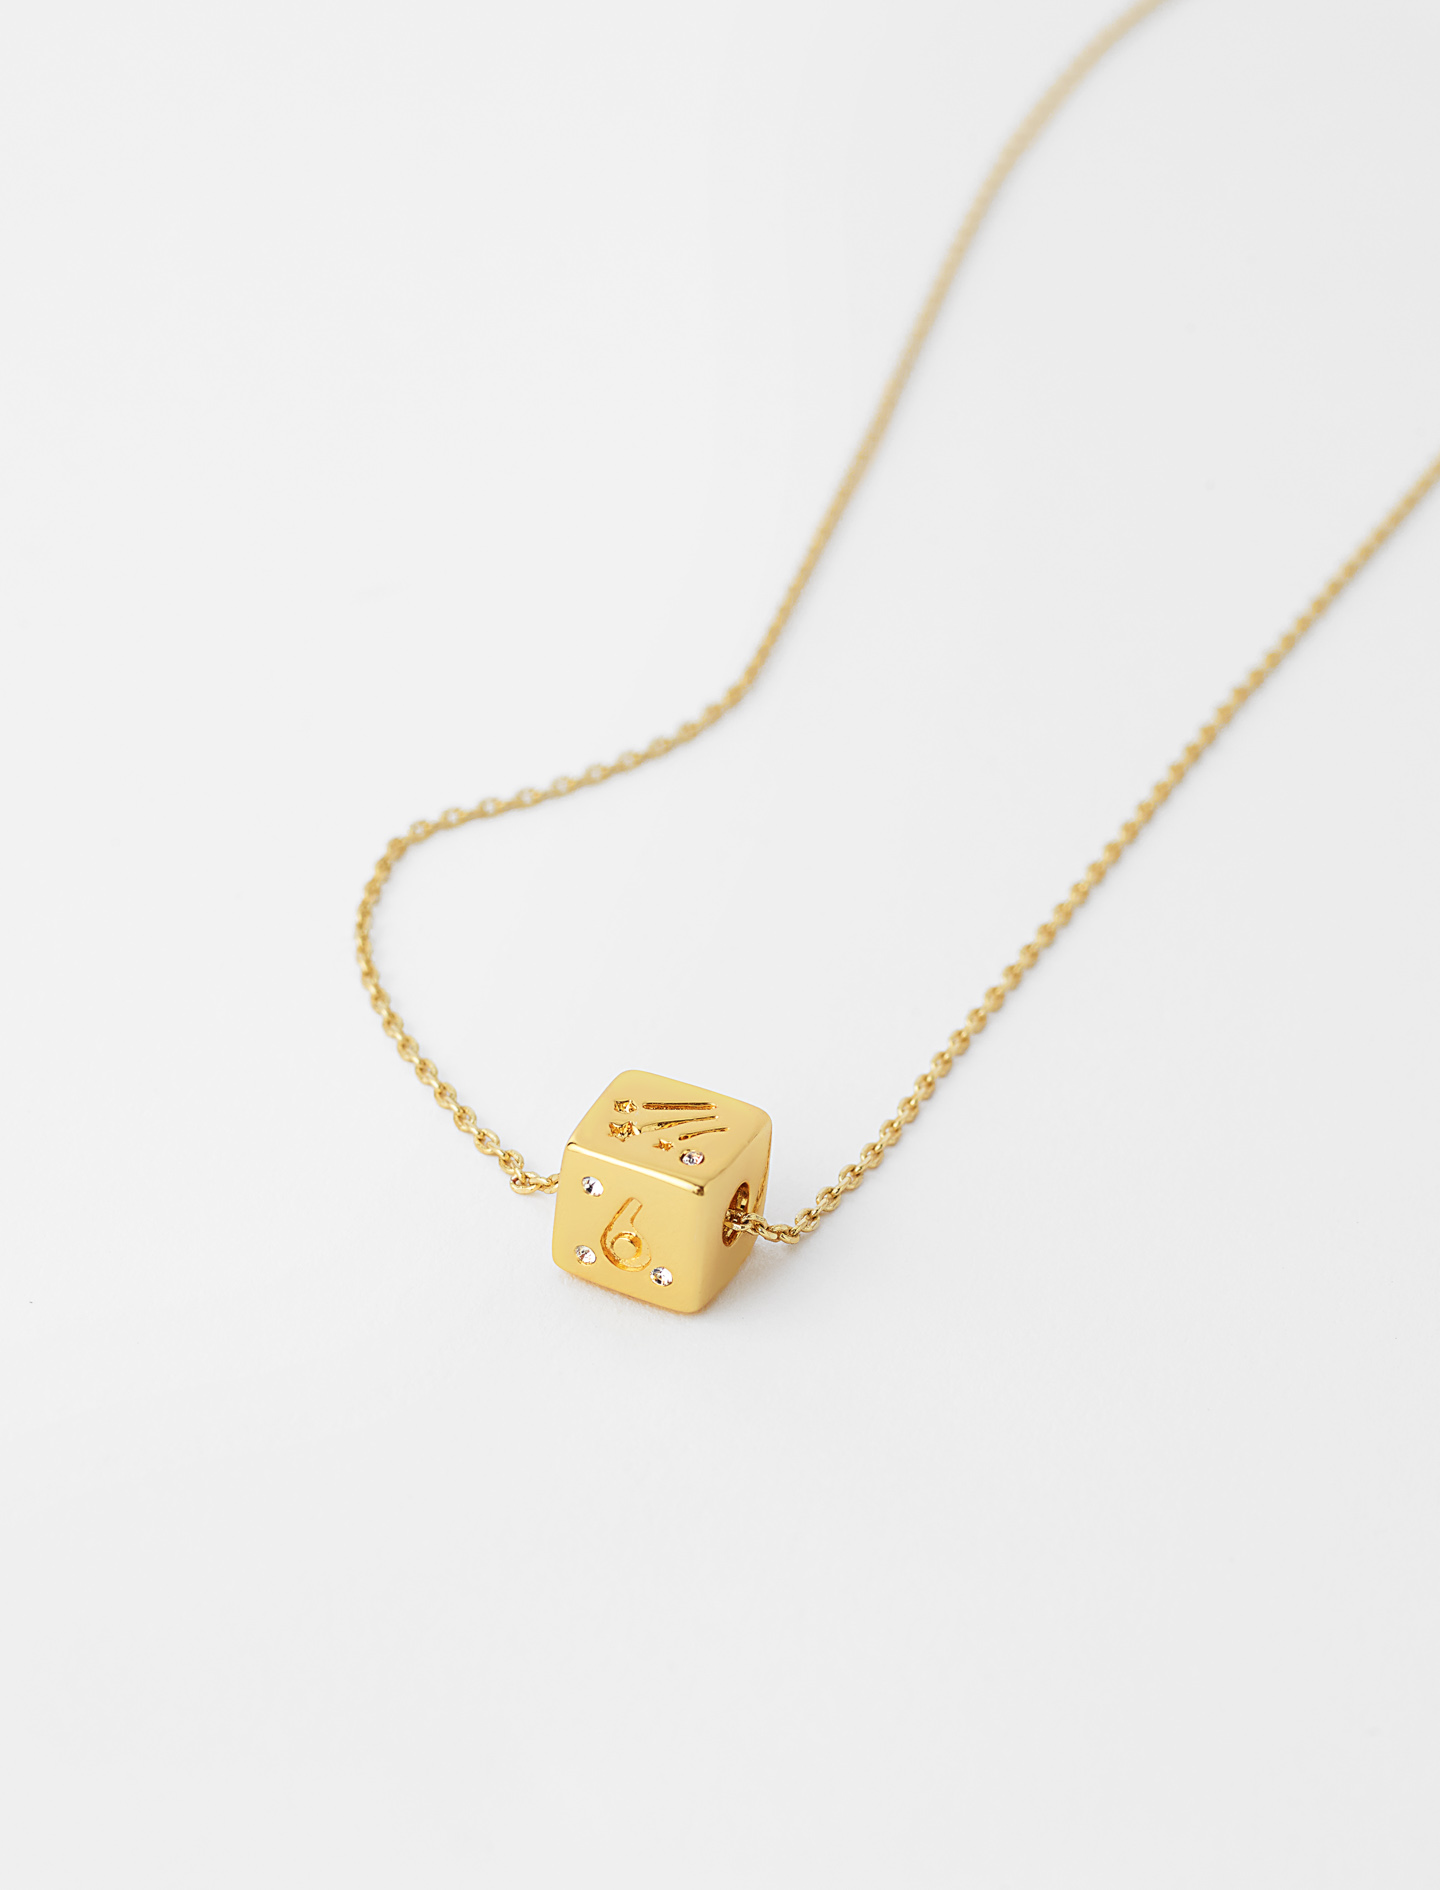 Number 6 or 9 dice necklace gold by maje paris